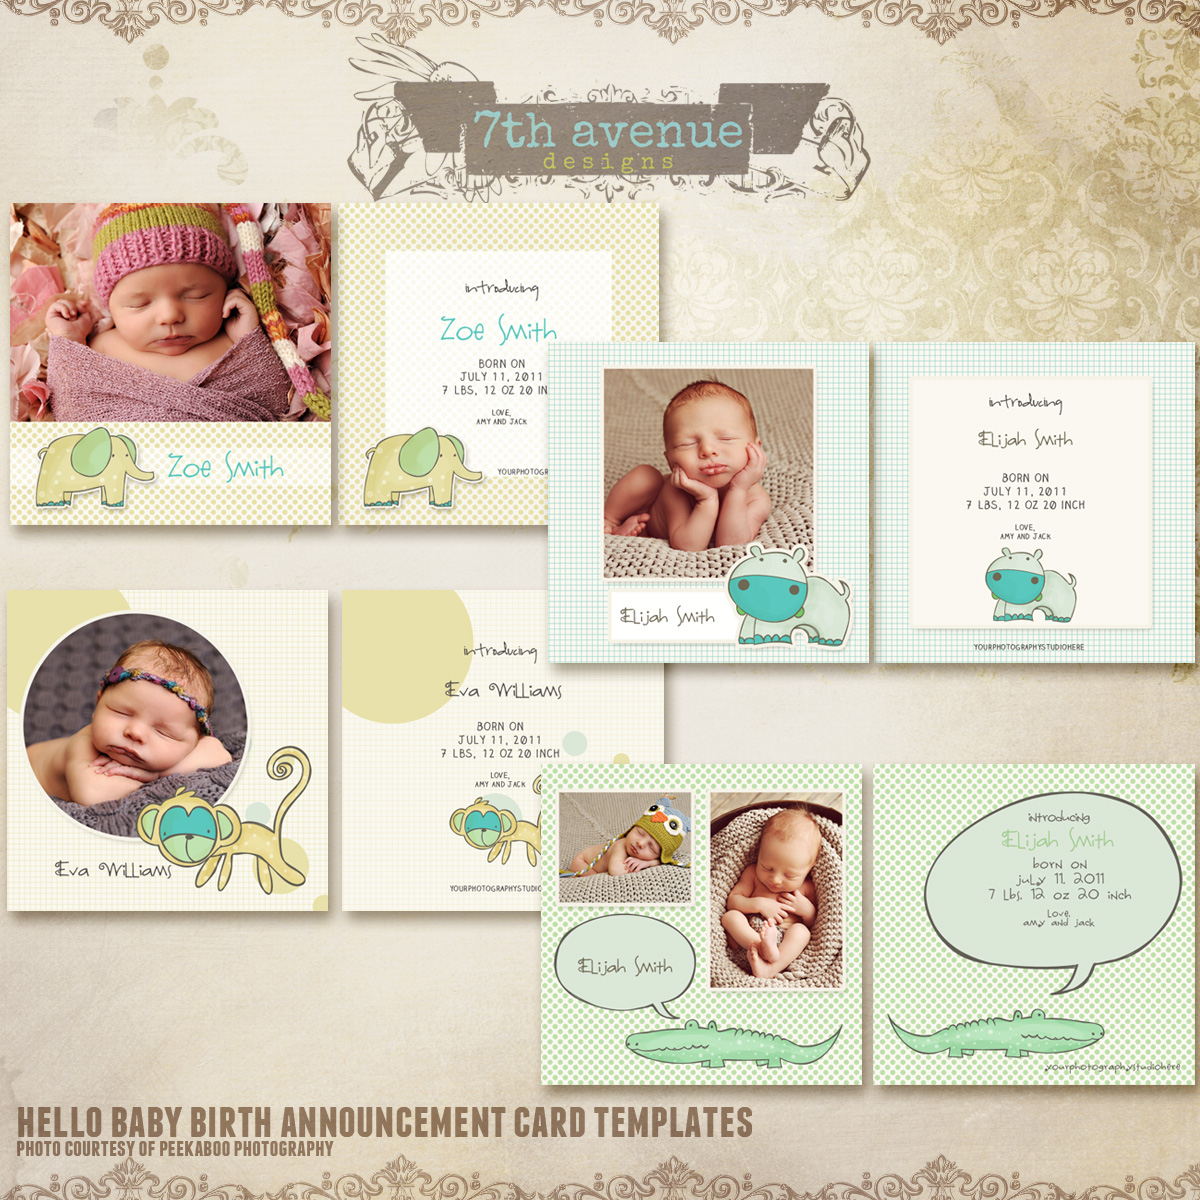 hello baby birth announcement card templates cards